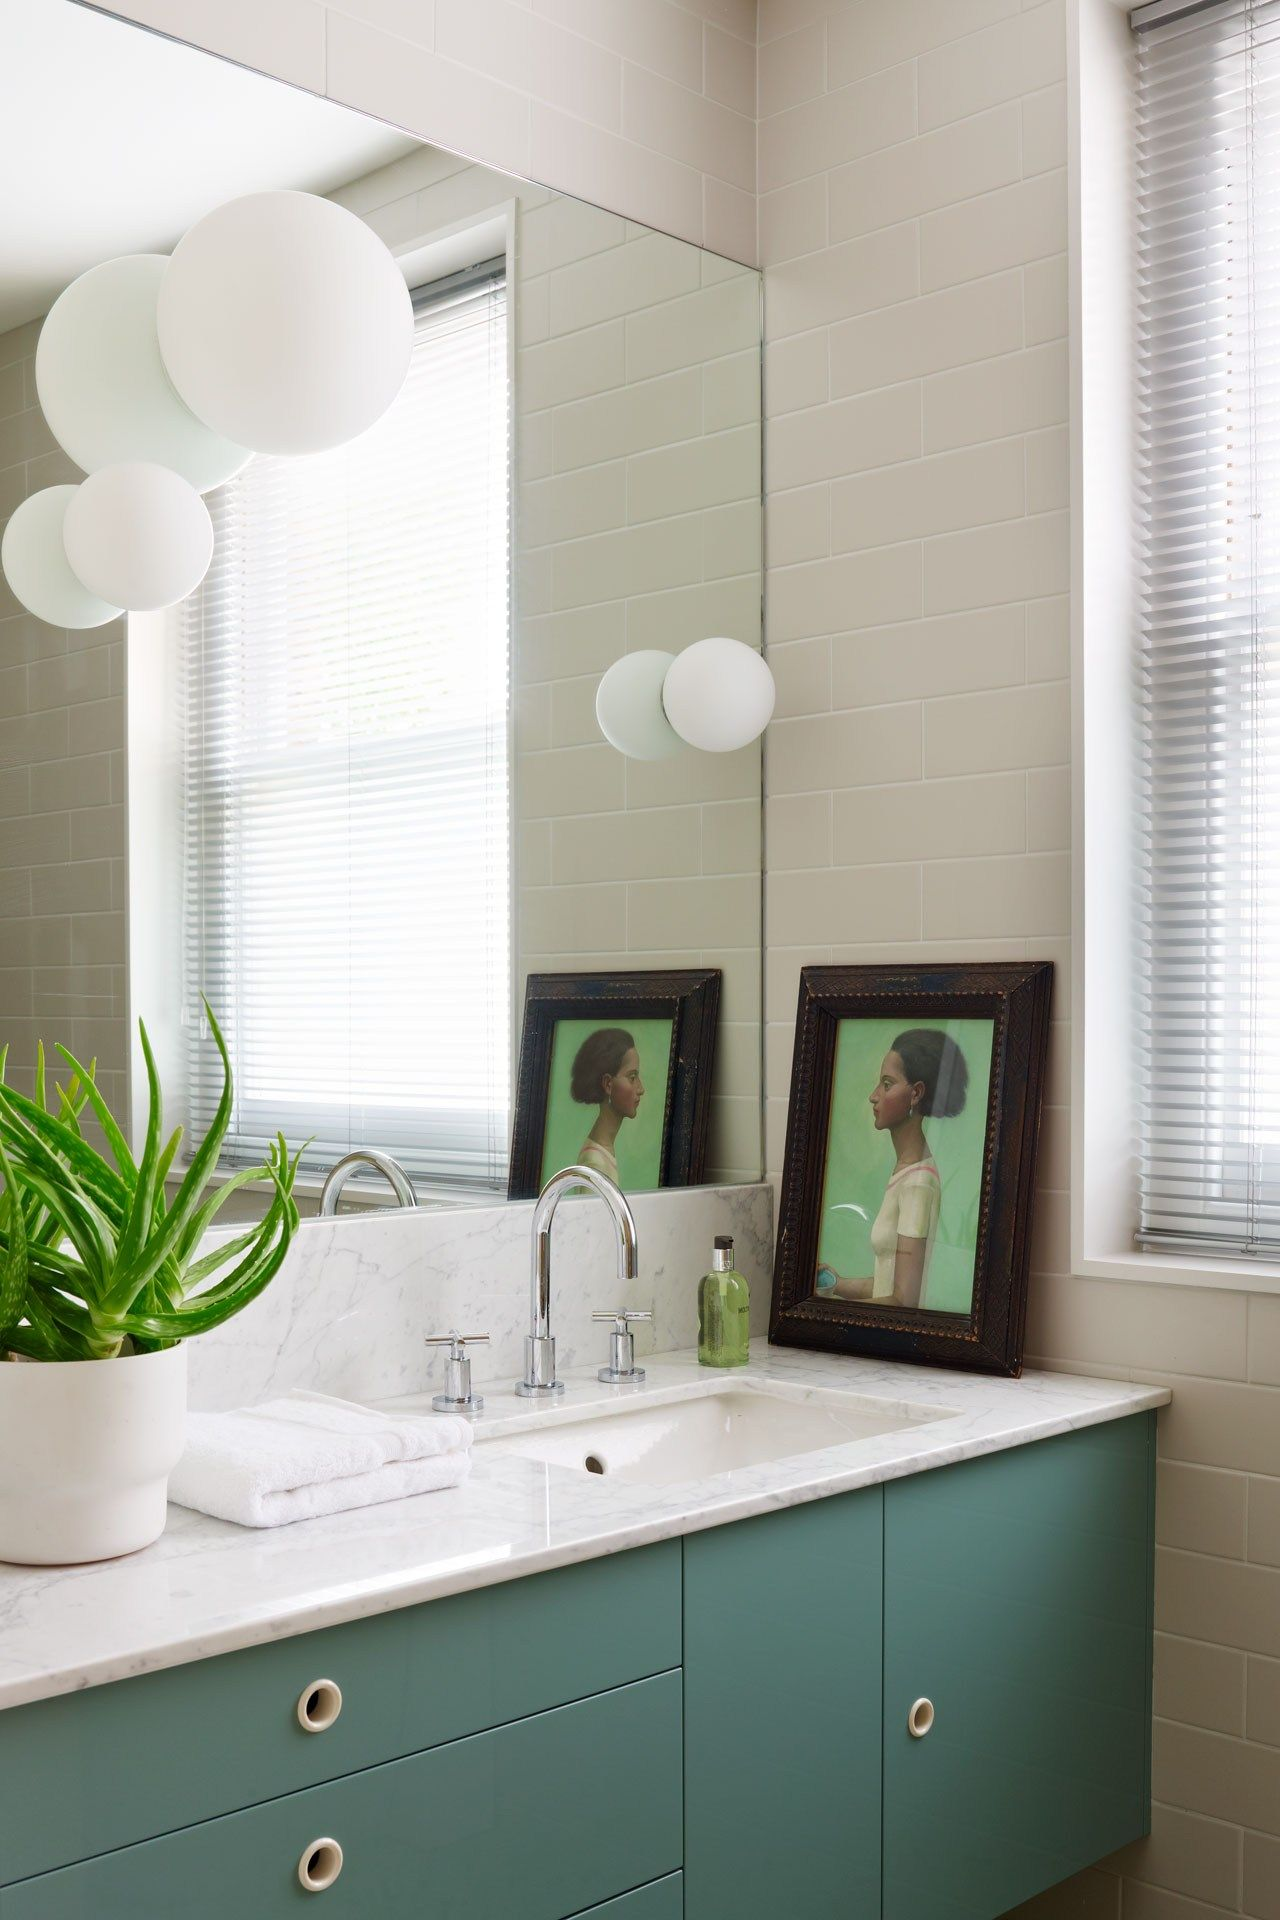 See the best design ideas for the smallest room in the house | home ...